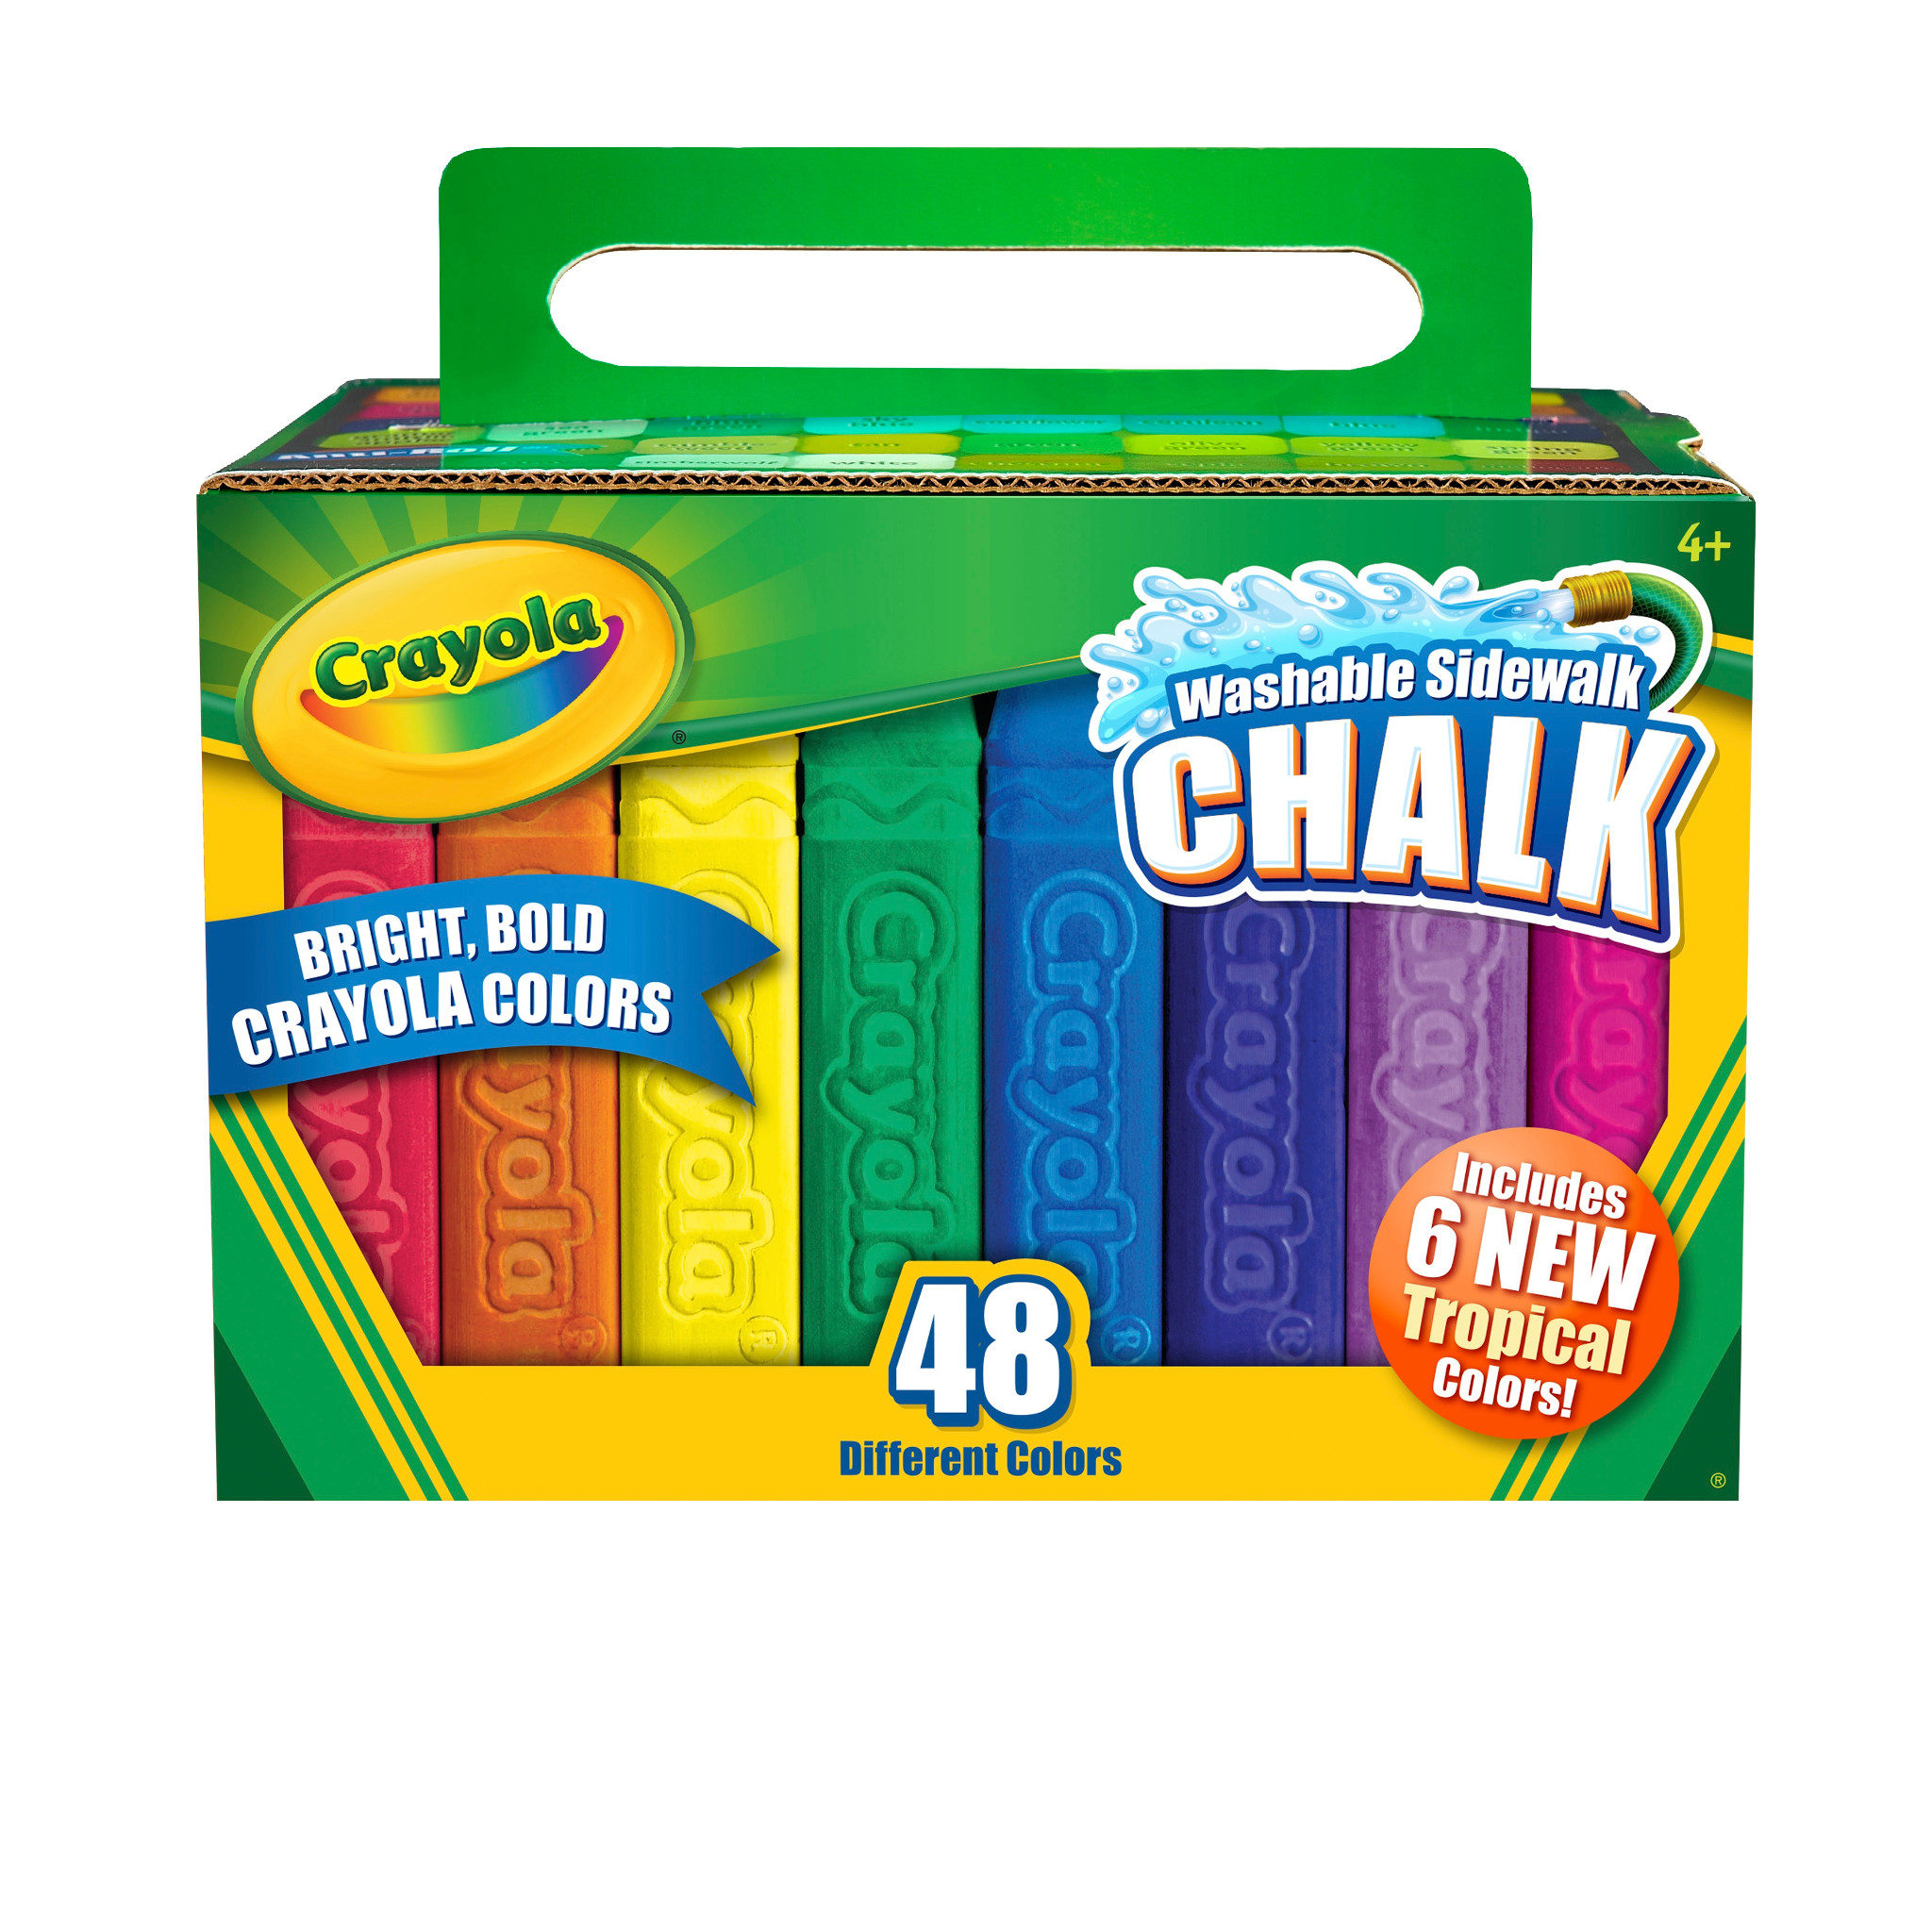 Crayola Washable Sidewalk Chalk, Assorted Colors, Outdoor Toys, 48 Count